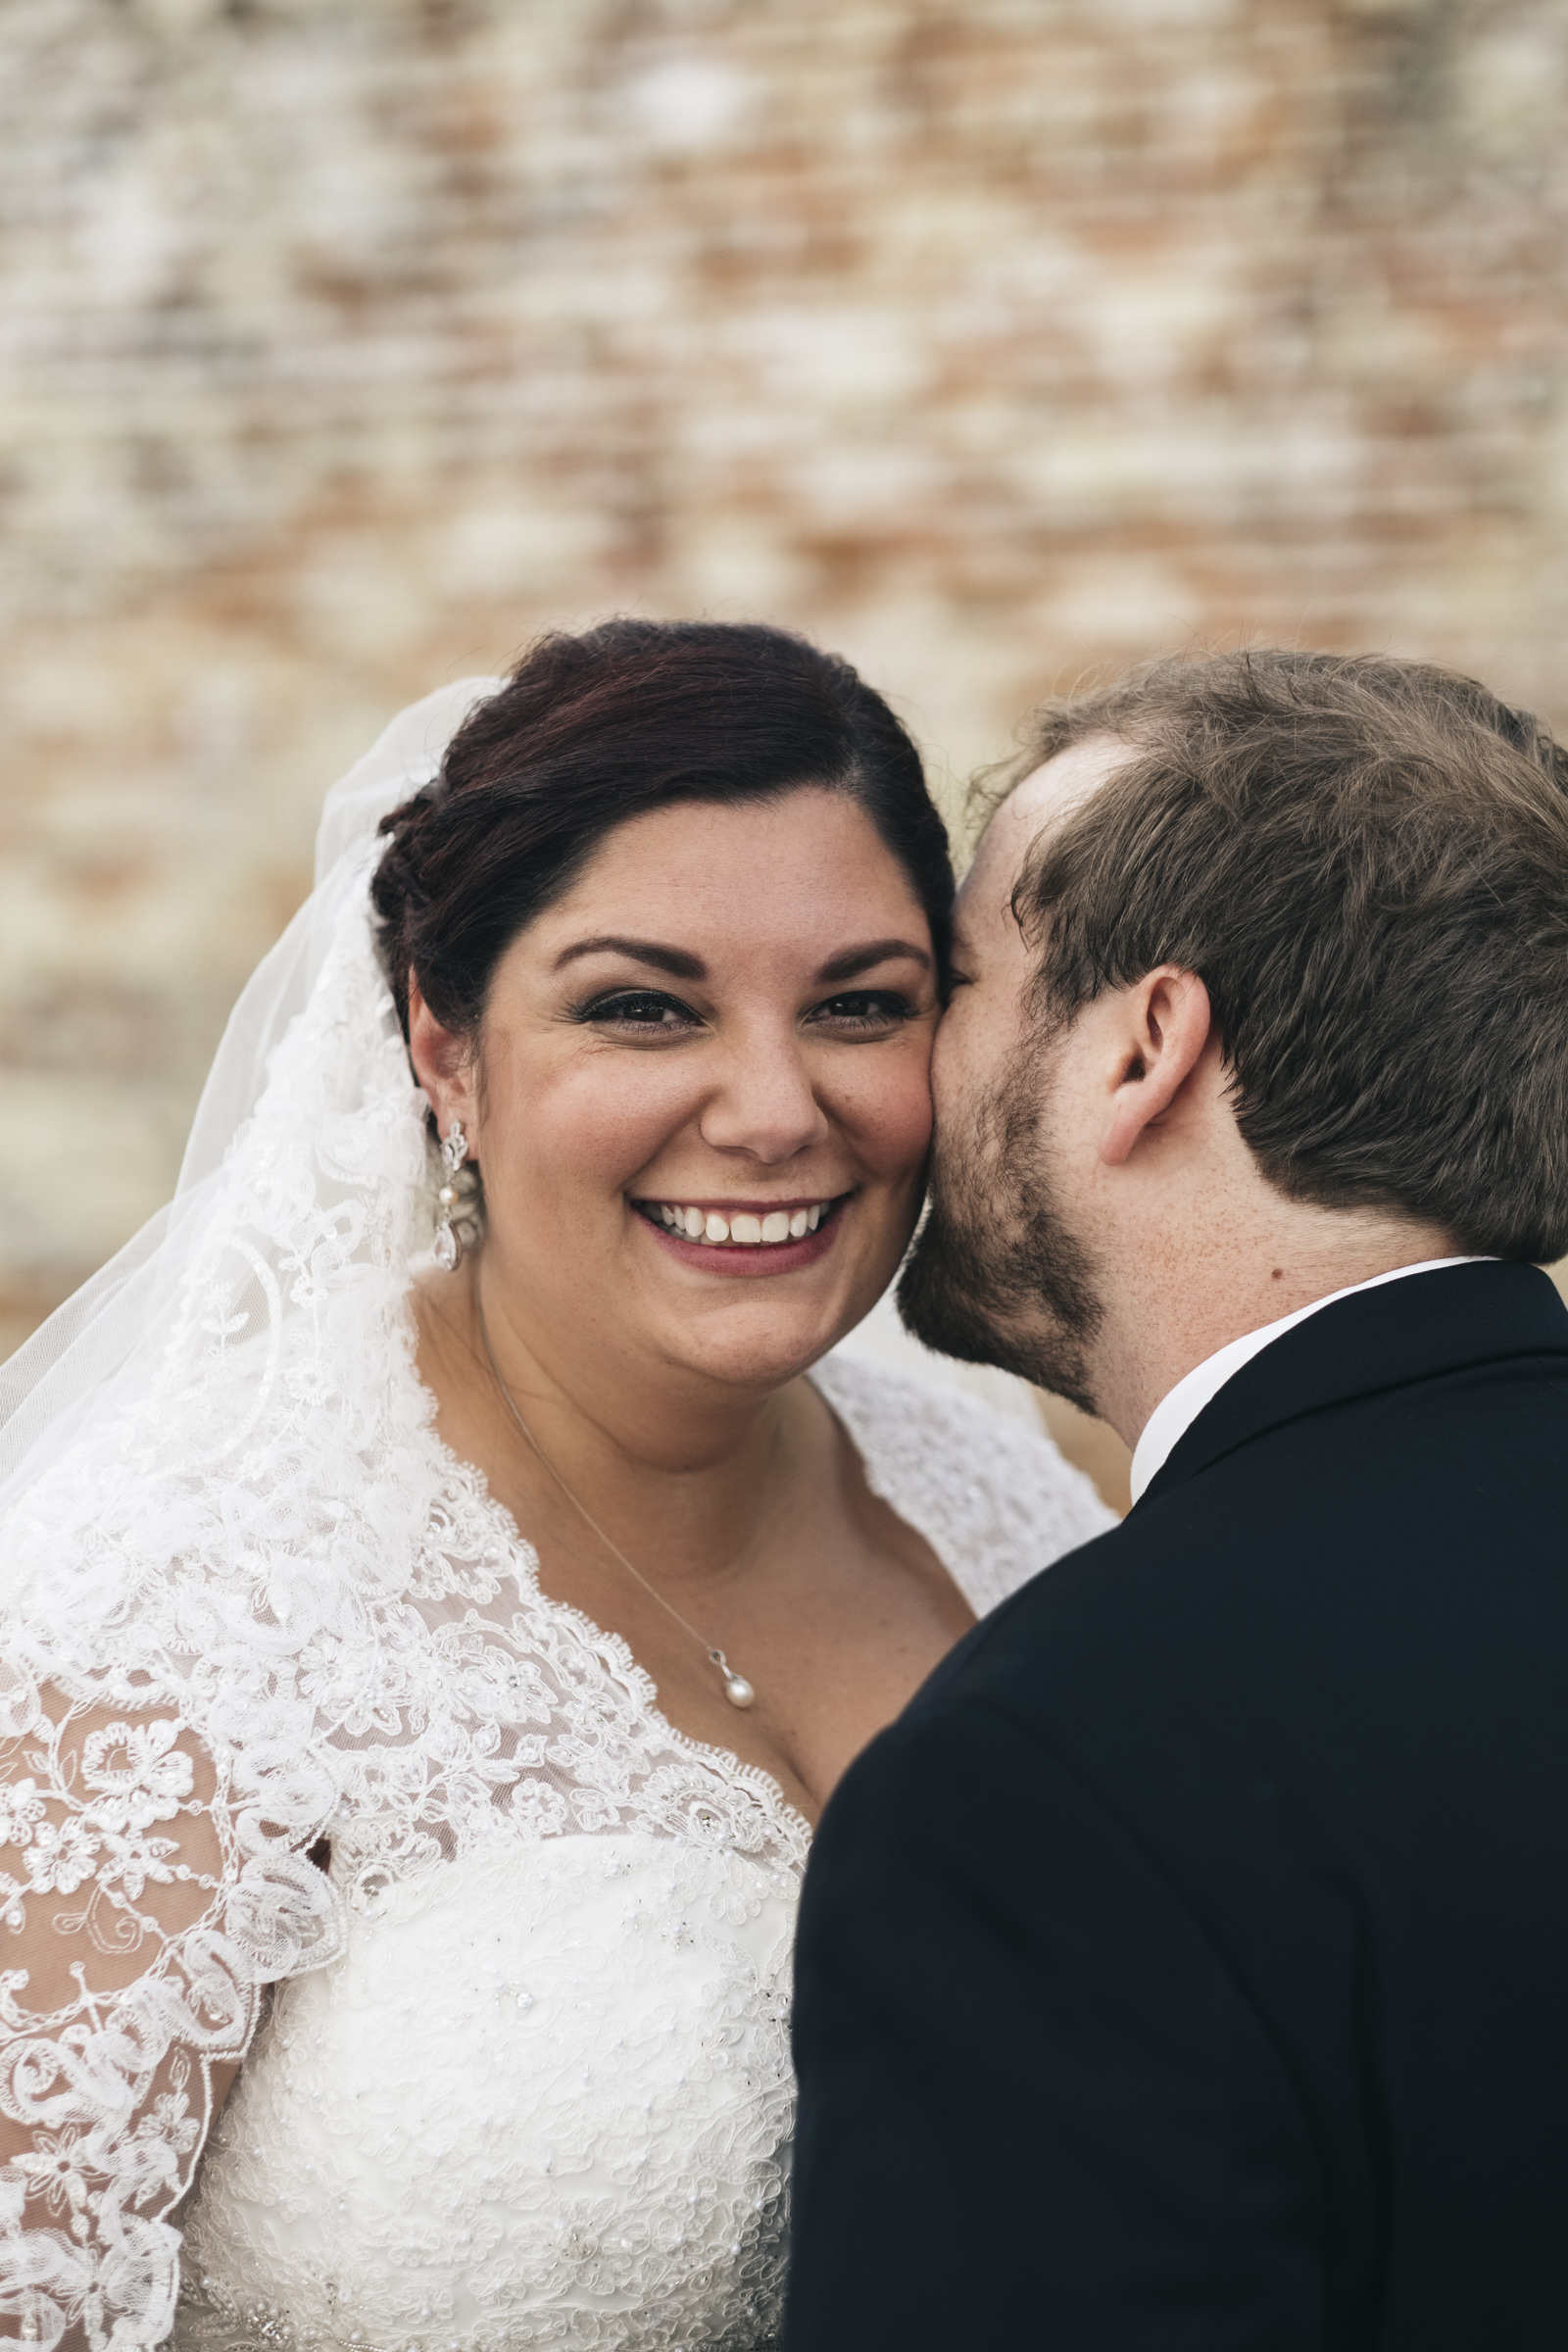 Bride and groom smile during their wedding photos